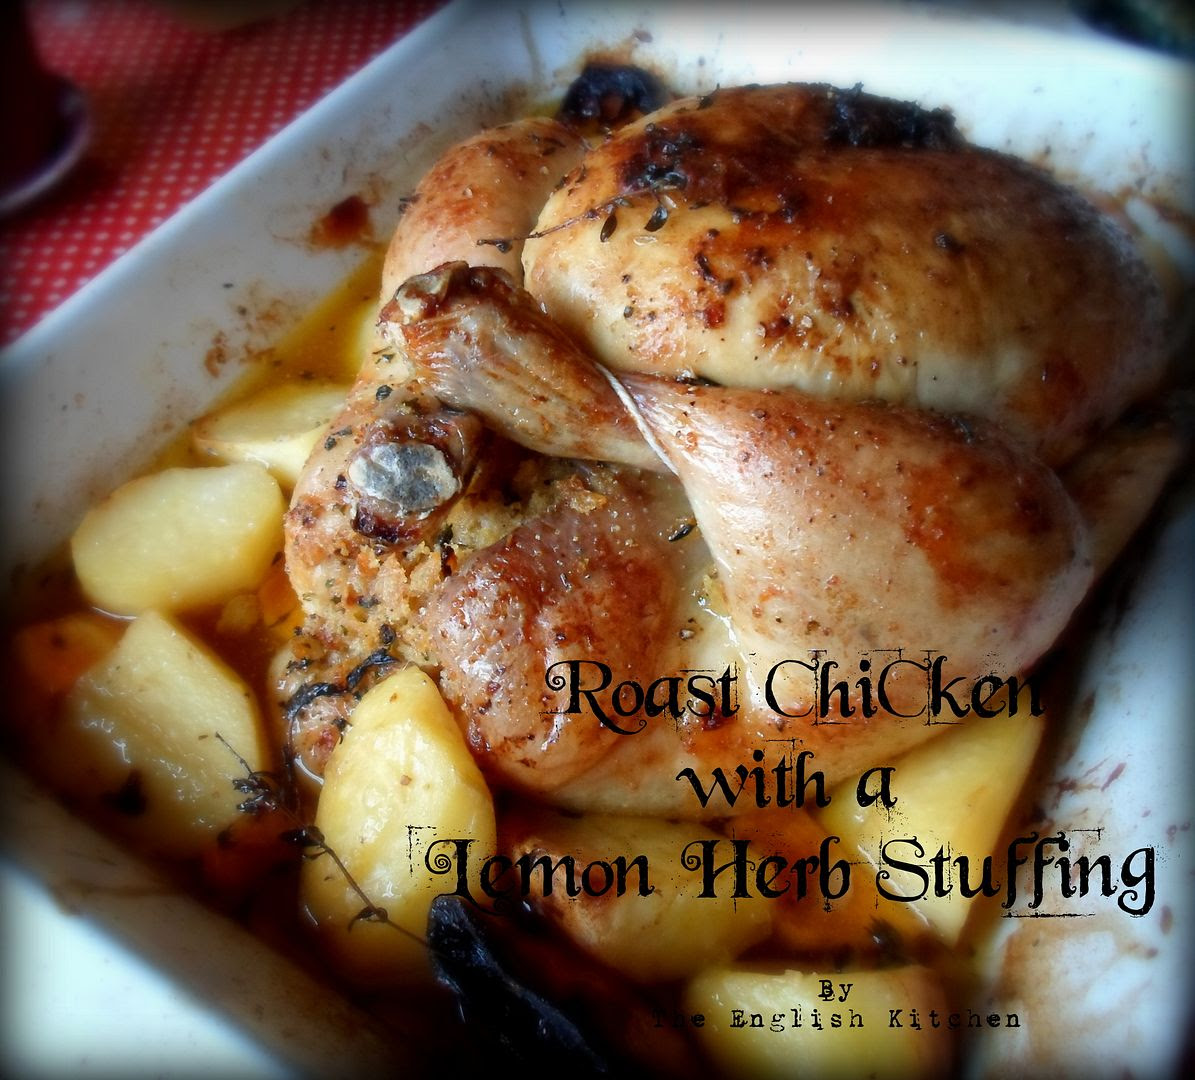 photo RoastChicken_zps852cf25c.jpg